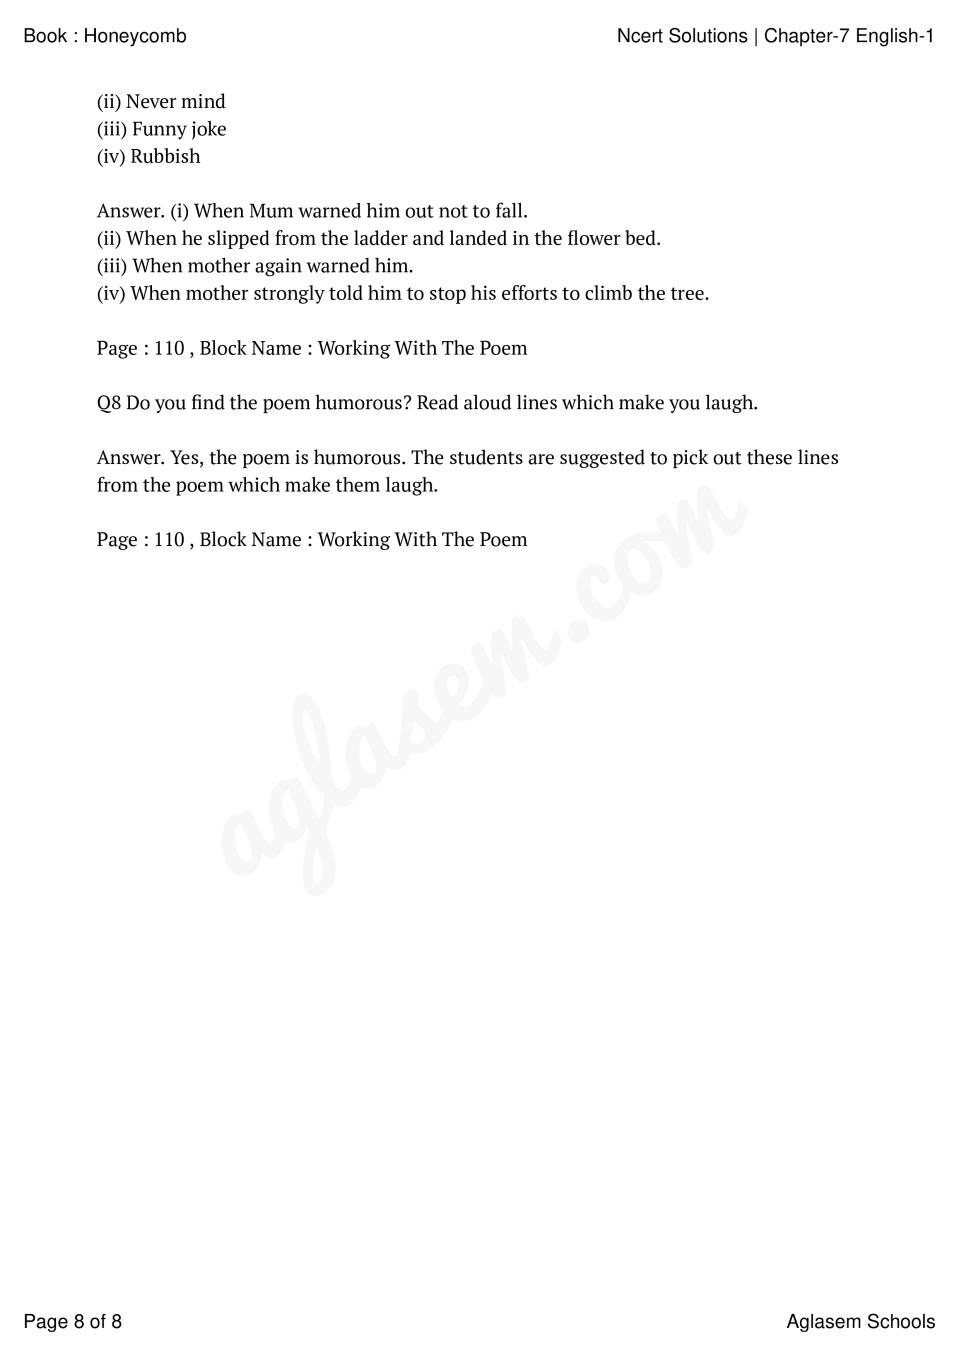 NCERT Solutions for Class 7 English Chapter 7 The Invention